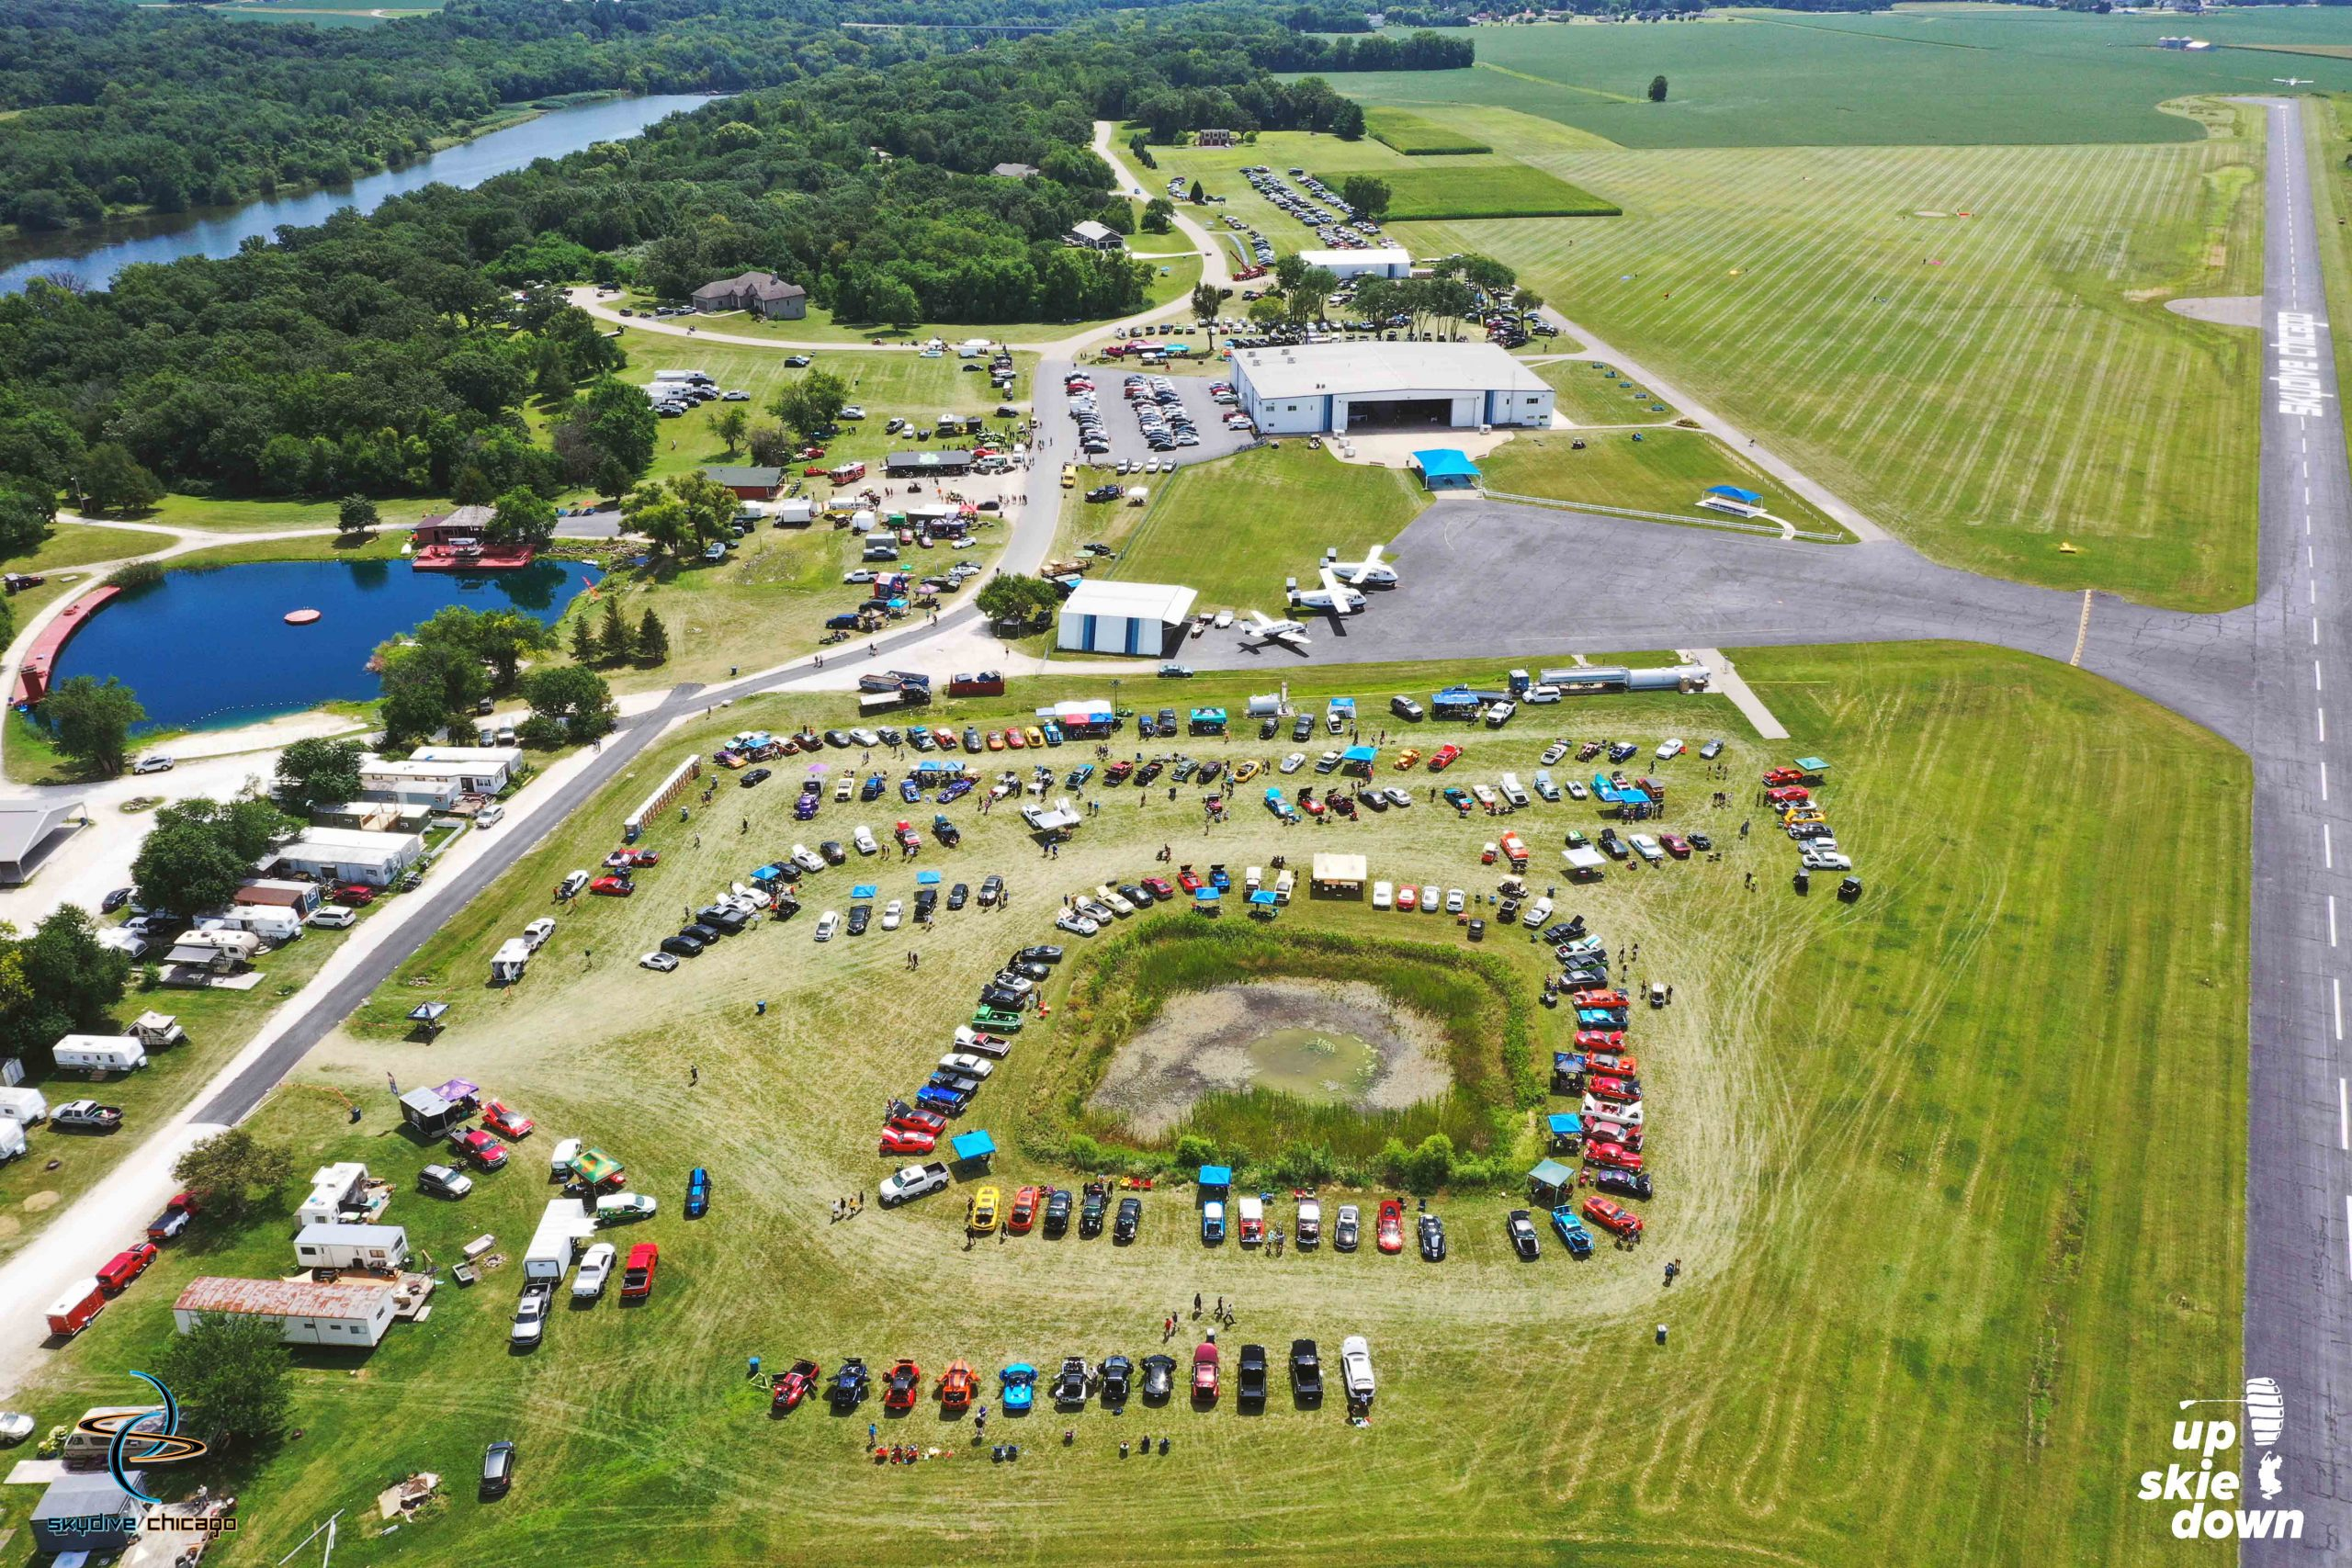 Ariel image of car show at Skydive Chicago